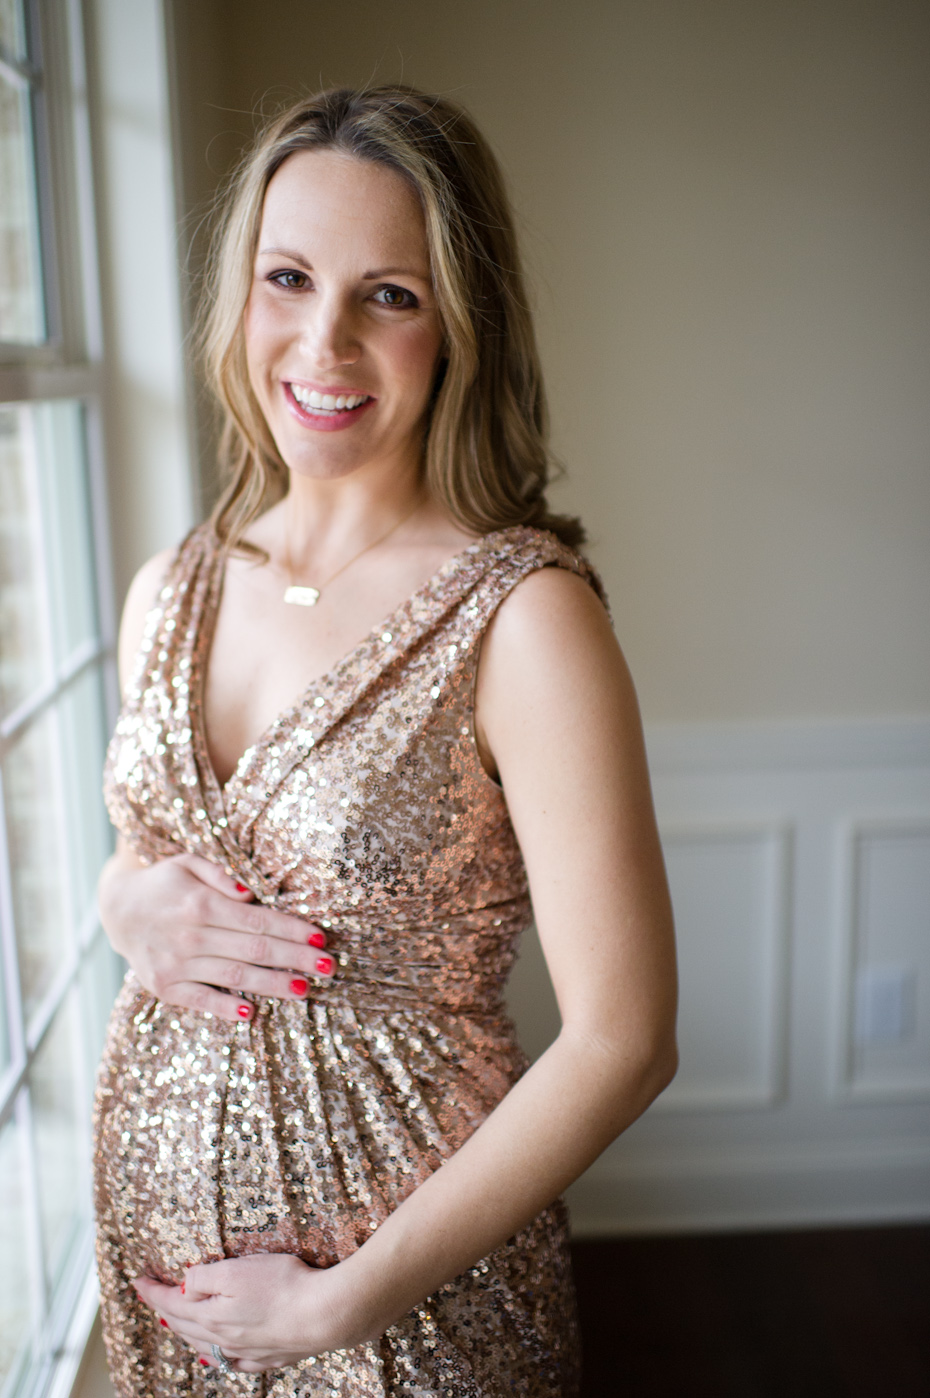 Gold Sequin Dress in Maternity Pictures